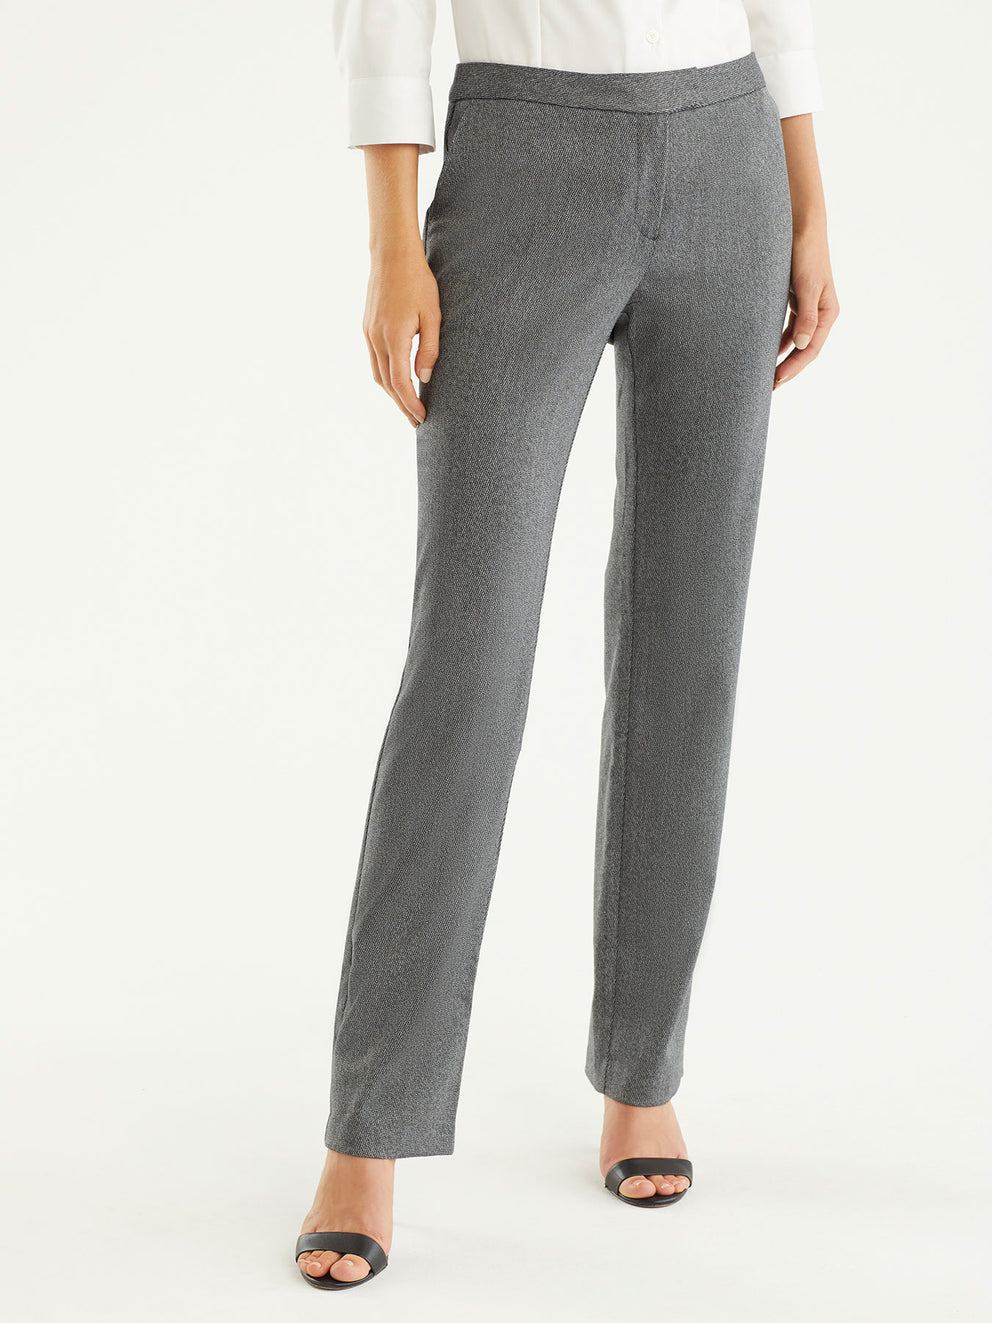 The Jones New York Broken Twill Sydney Pant in color Pewter Ivory - Image Position 1